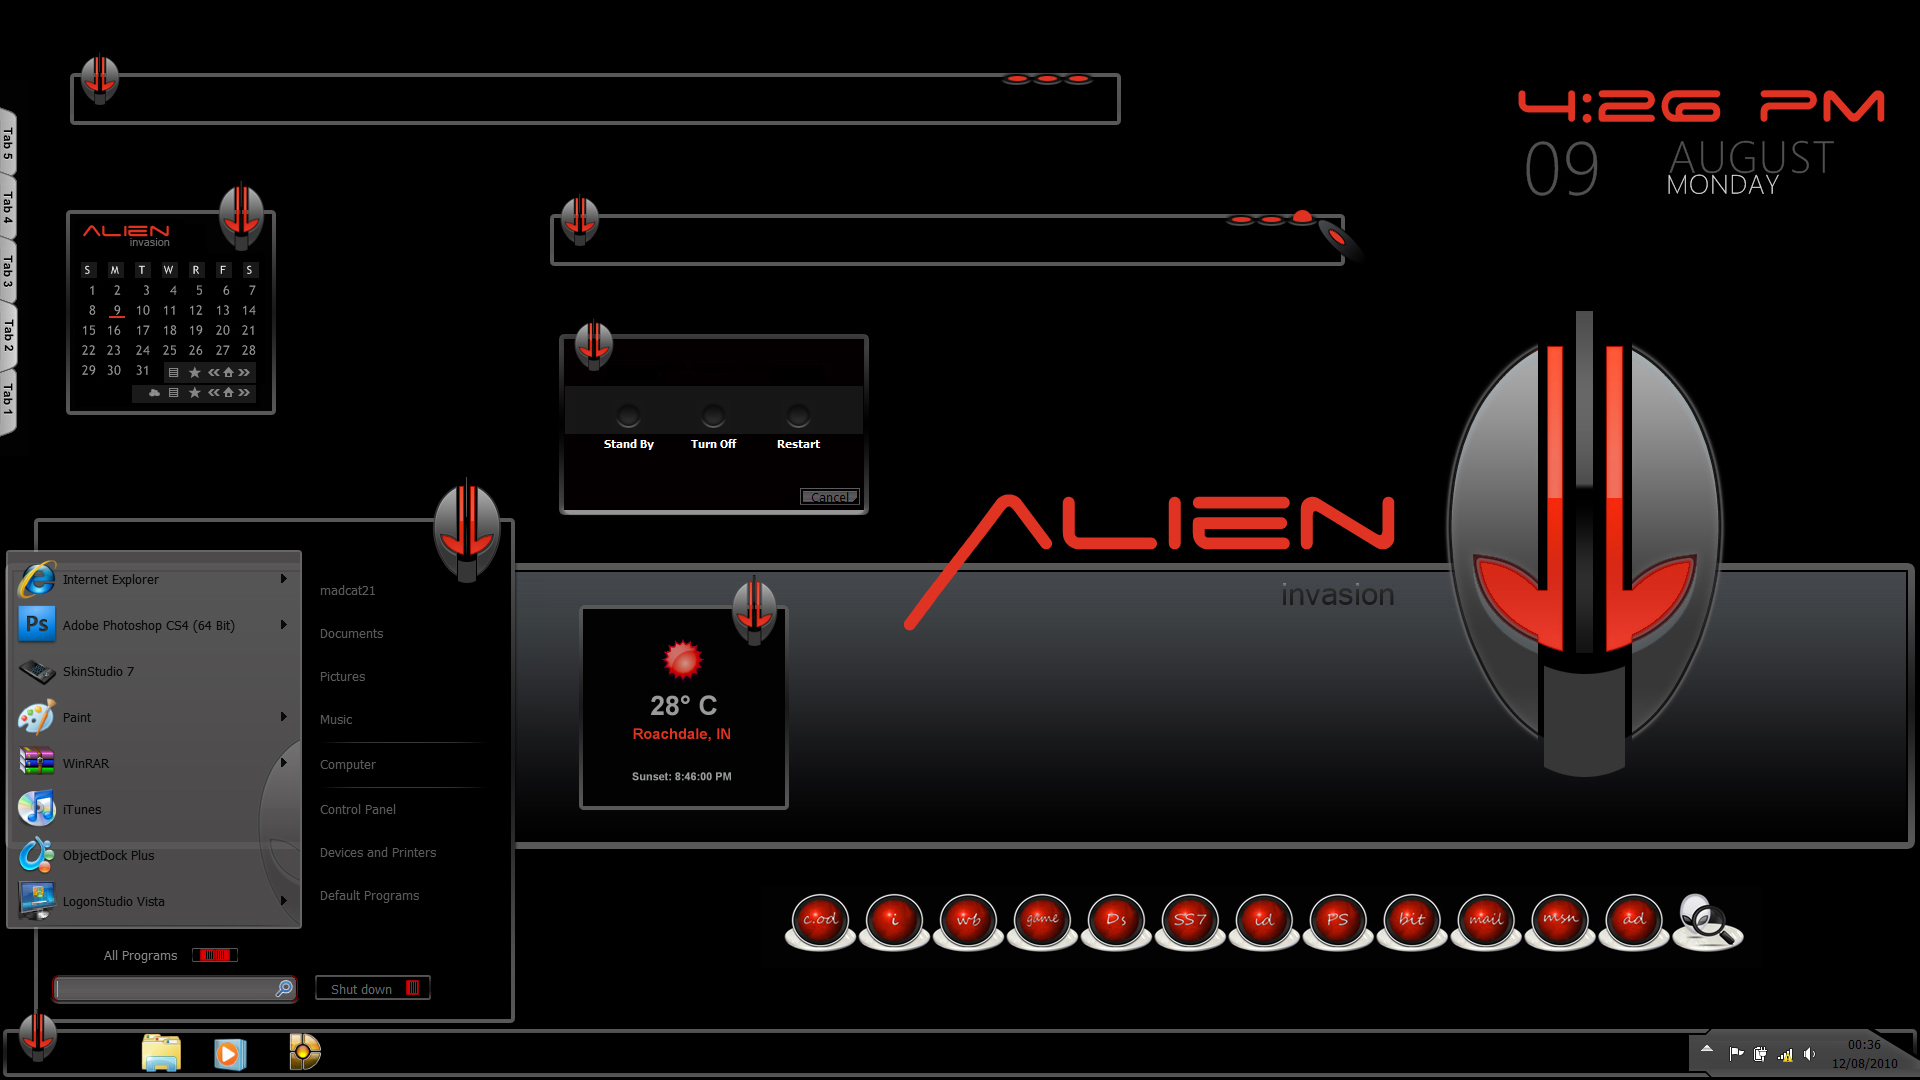 Alien Invasion wb